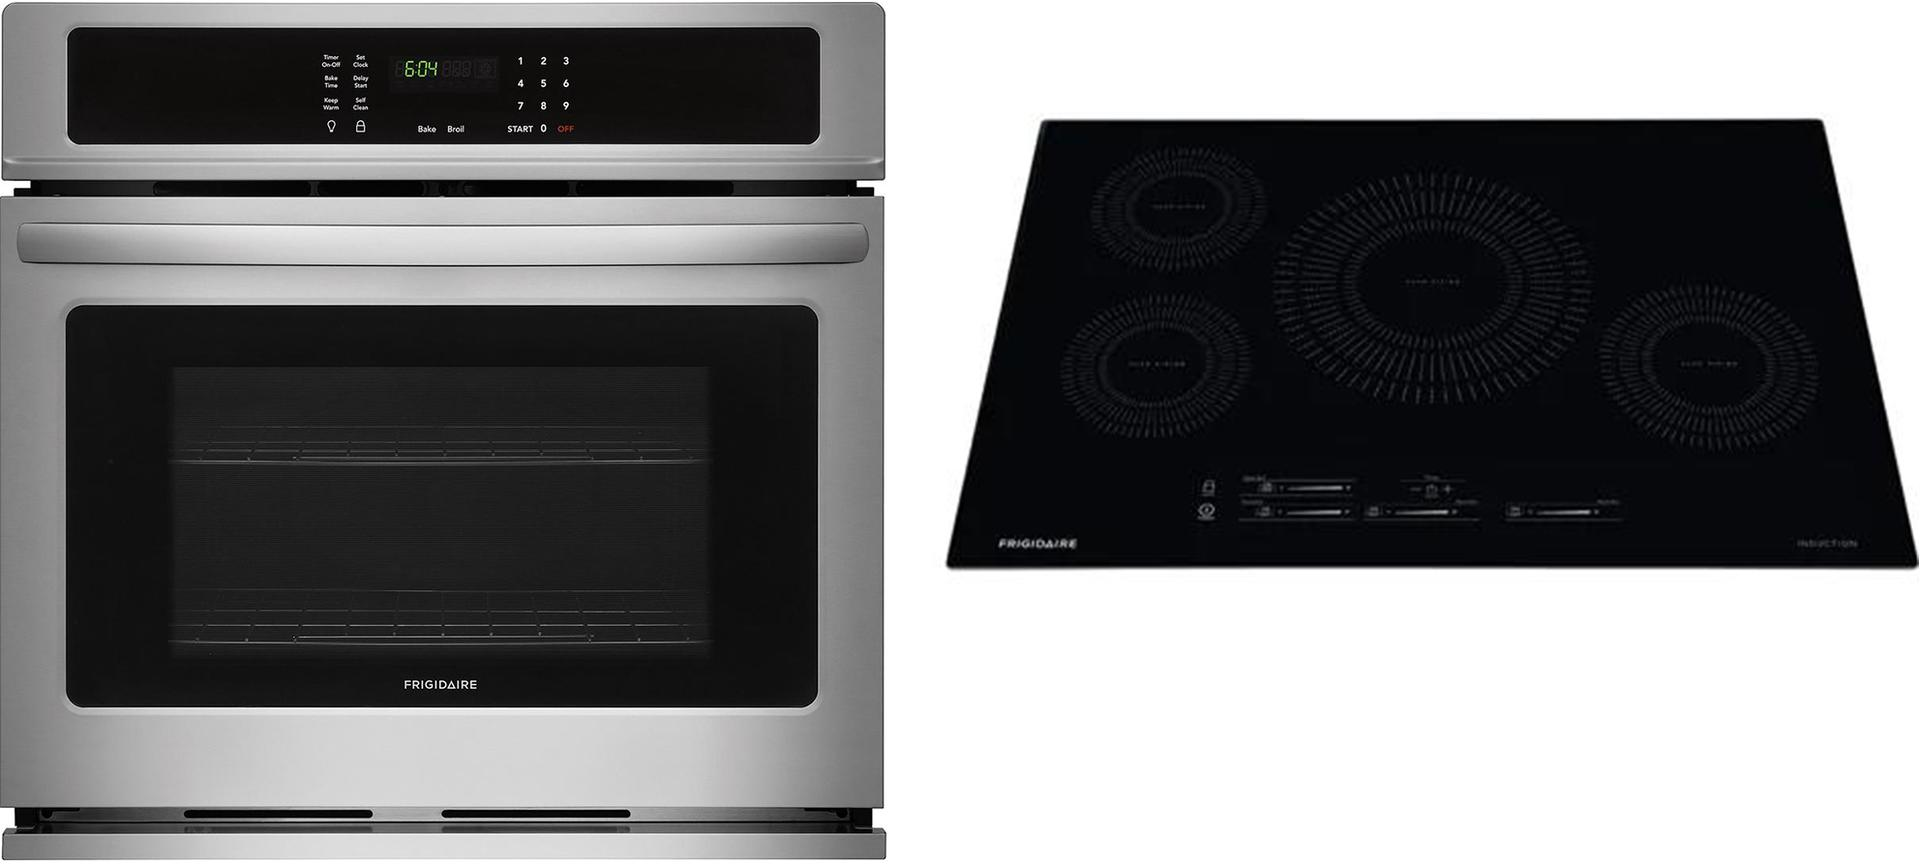 Frigidaire 2 Piece Kitchen Appliances Package with FFEW2726TS 27 Electric Single Wall Oven and FFEC3025US 30 Electric Cooktop in Stainless Steel